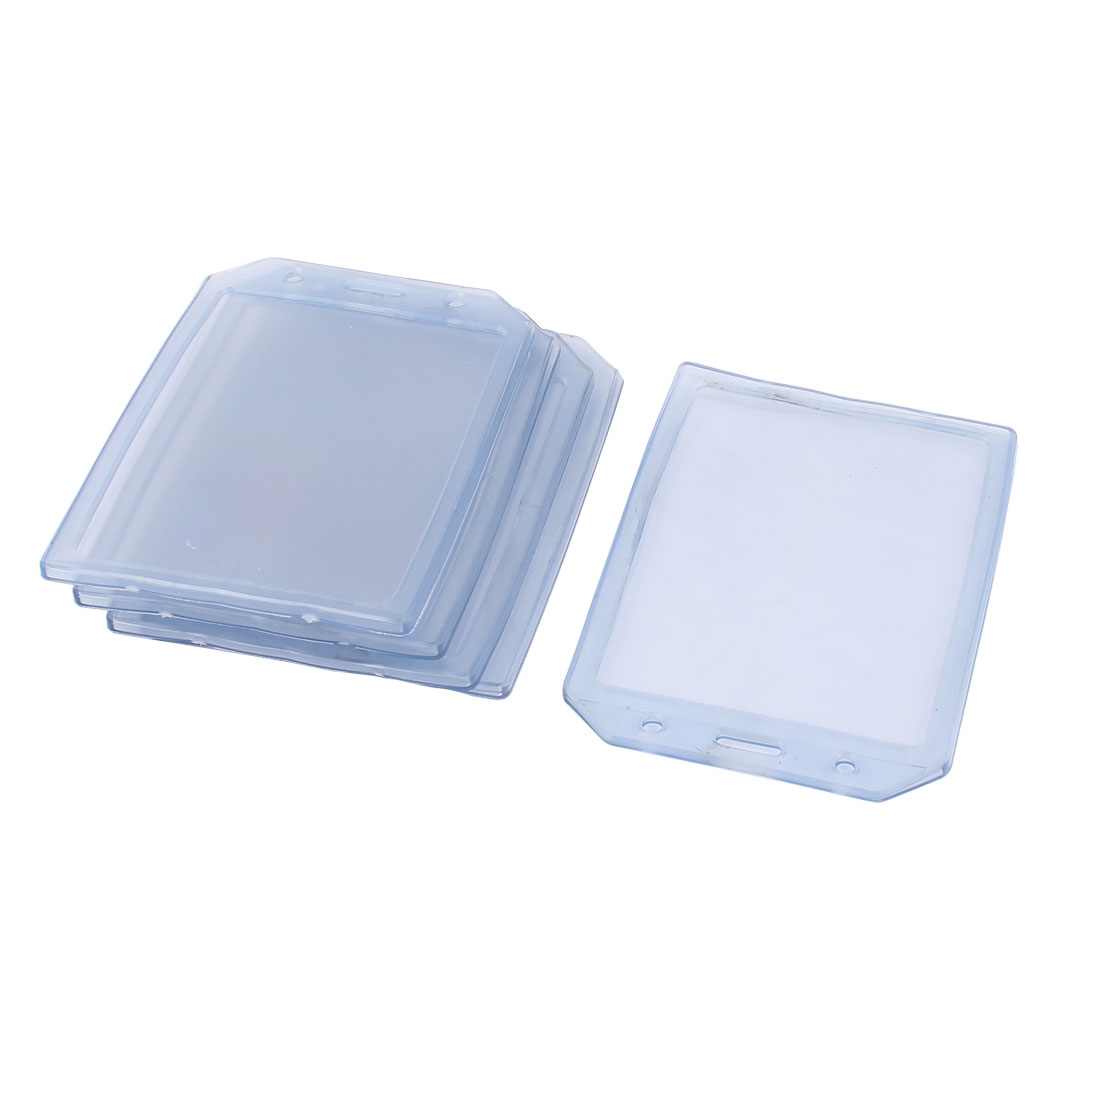 5 Pcs 137mmx97mm Plastic Office Name Tag Bussiness ID Card Badge Holders Clear